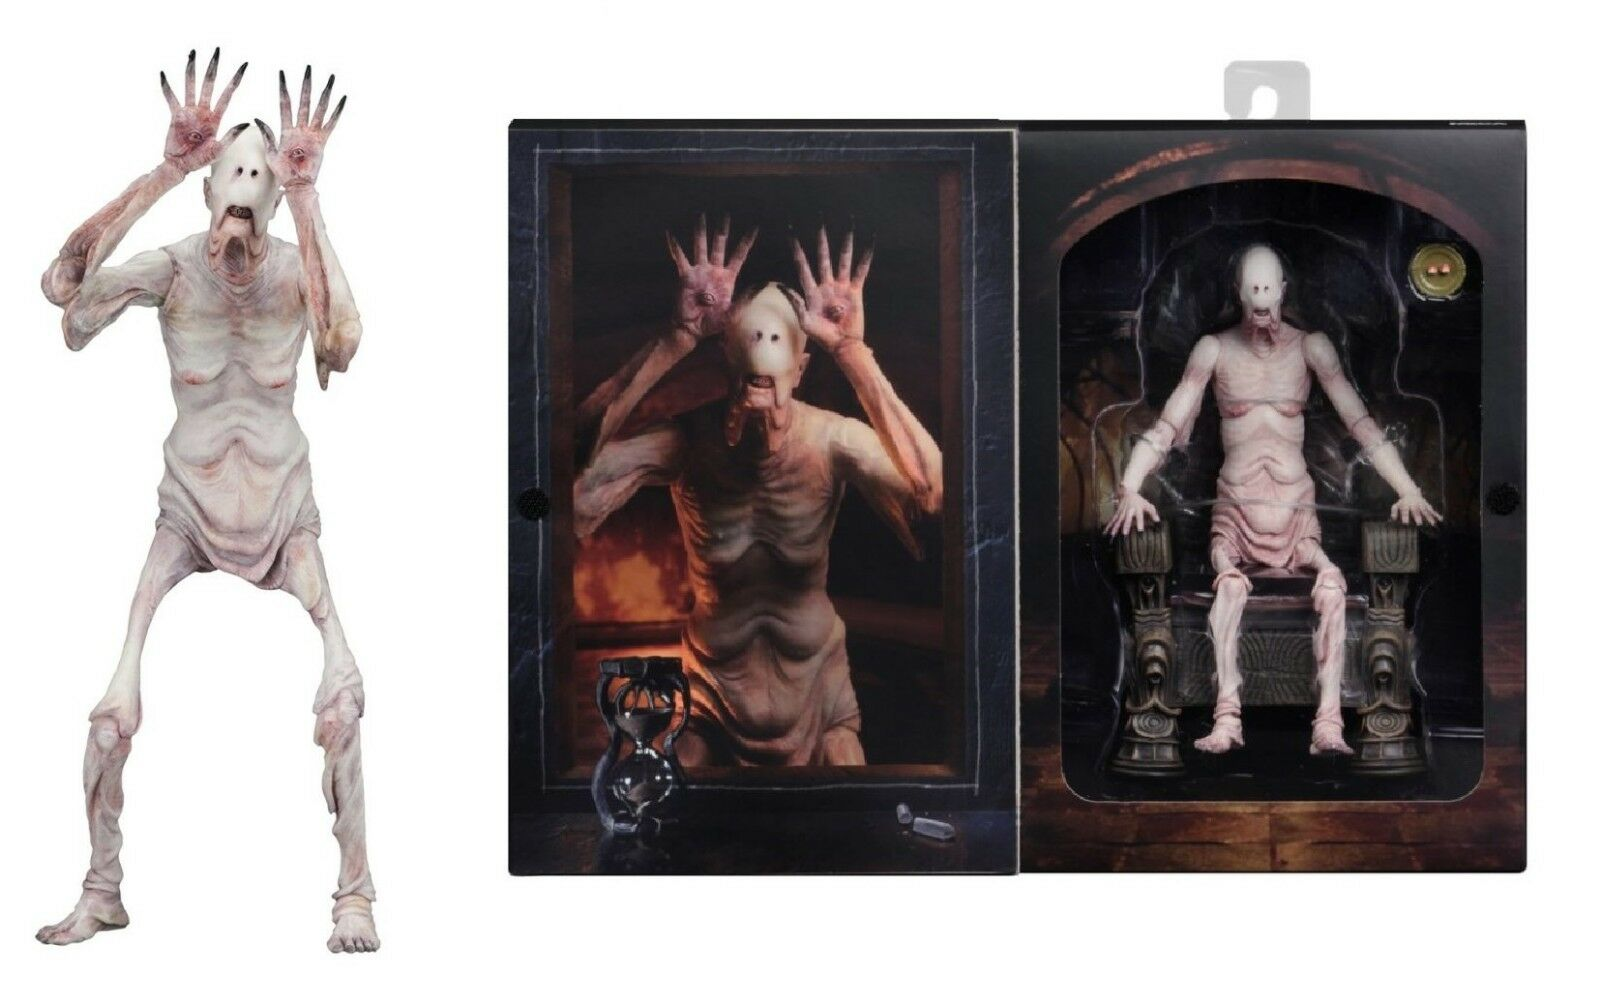 GDT Signature Collection Pans Labyrinth Pale Man Action Figure NECA PRE-ORDER